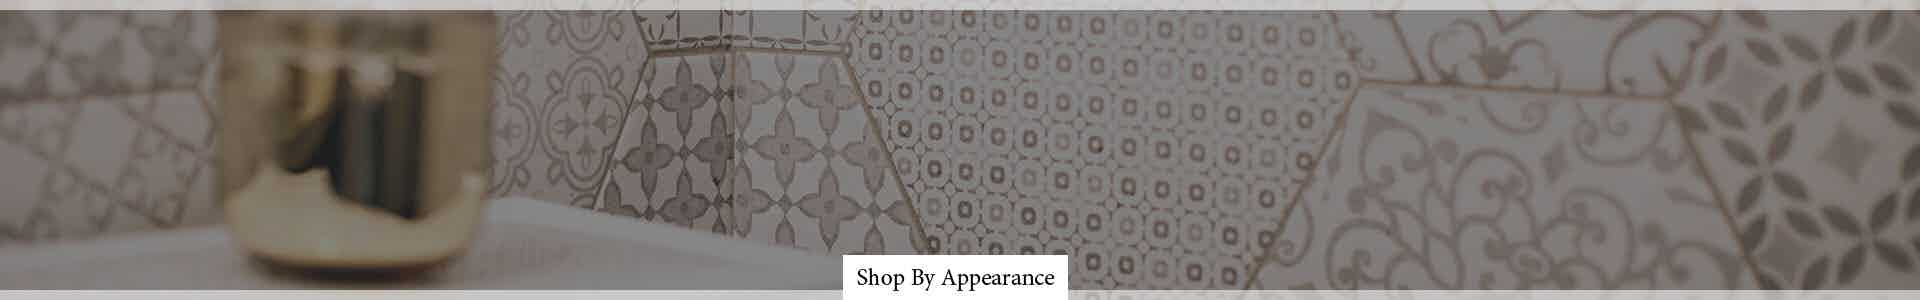 Shop By Appearance